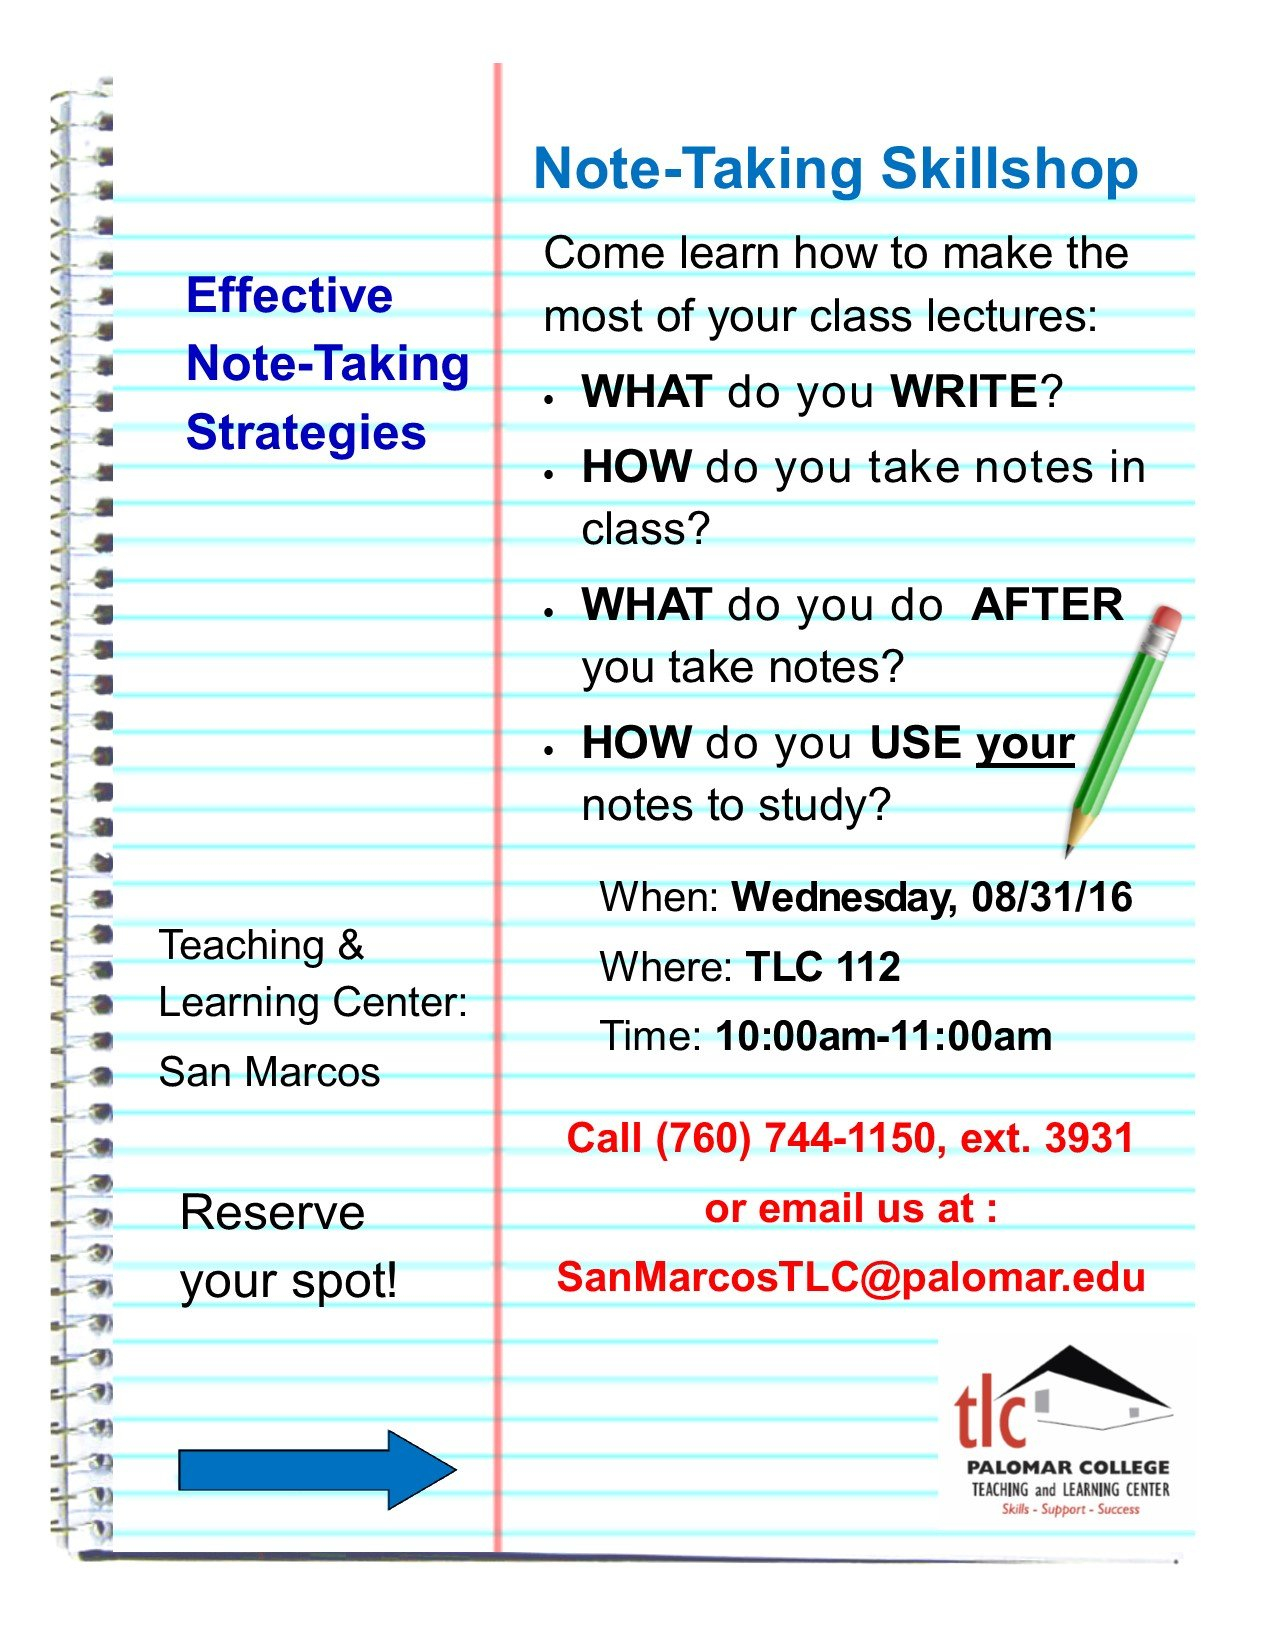 Effective Note Taking Strategies Free 2016 Calendar With Room For Taking Notes